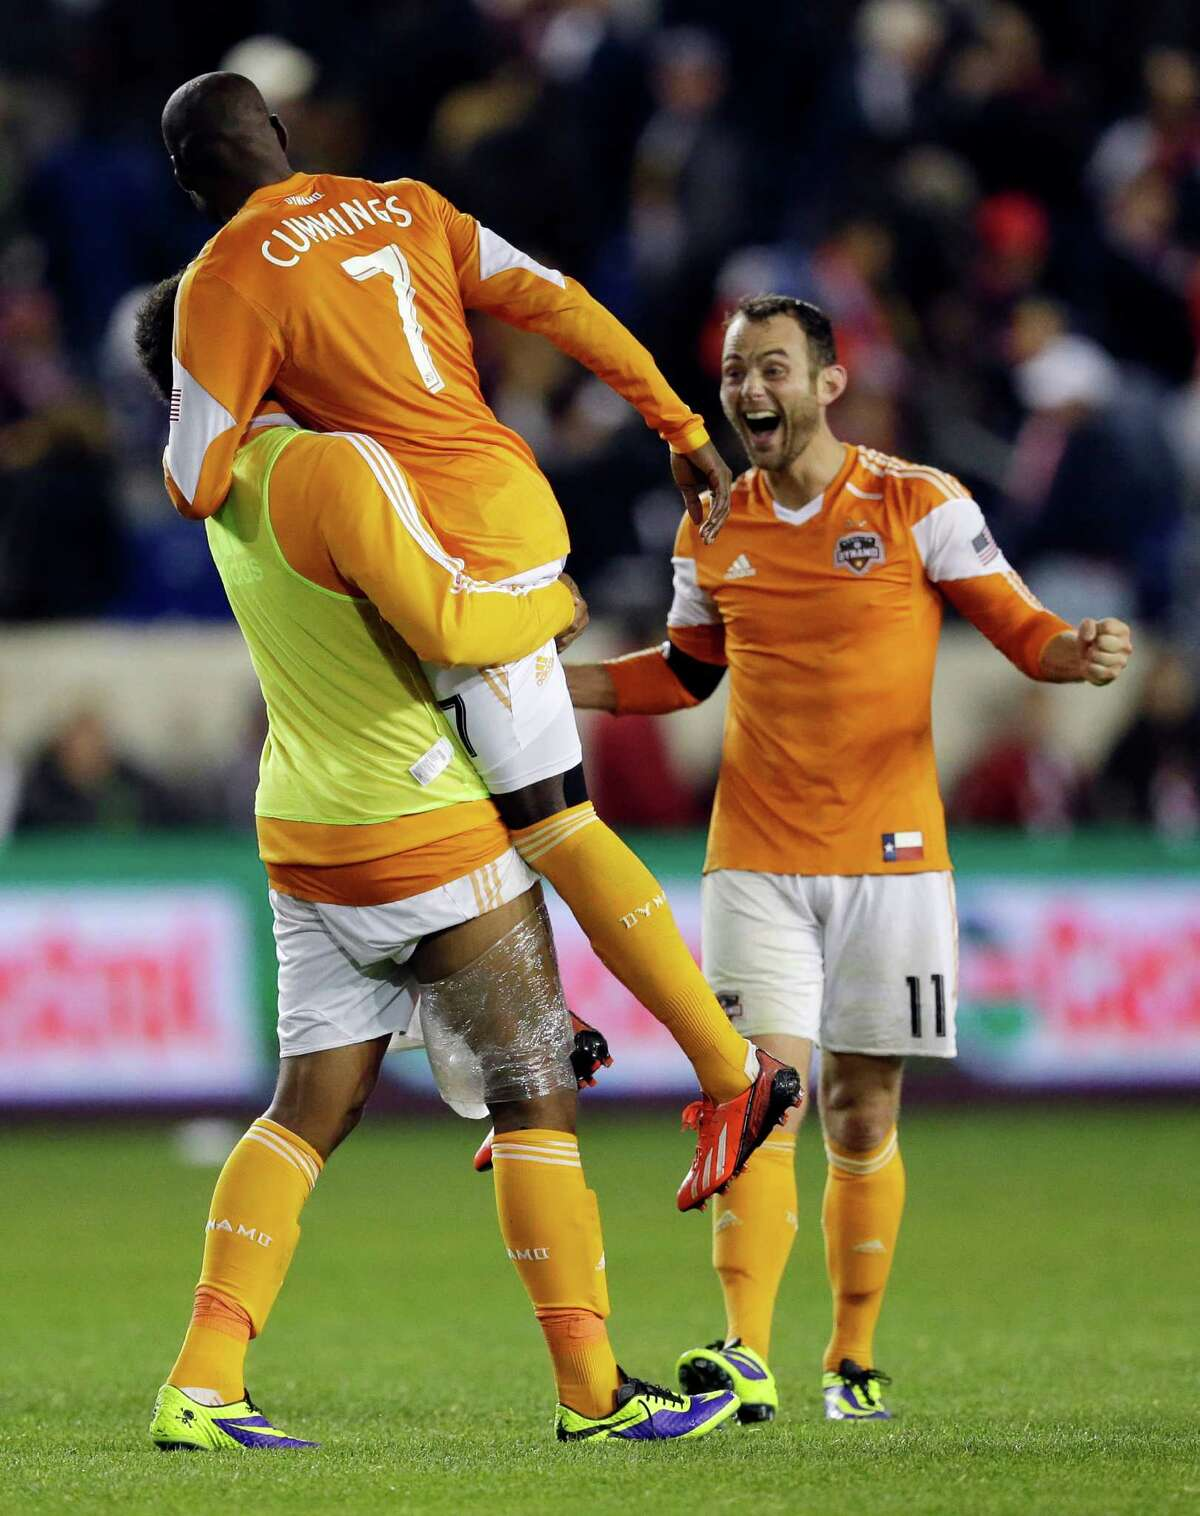 After scoring the winning goal in extra time, Omar Cummings (7) gets a lift from Giles Barnes to the delight of Brad Davis, right.